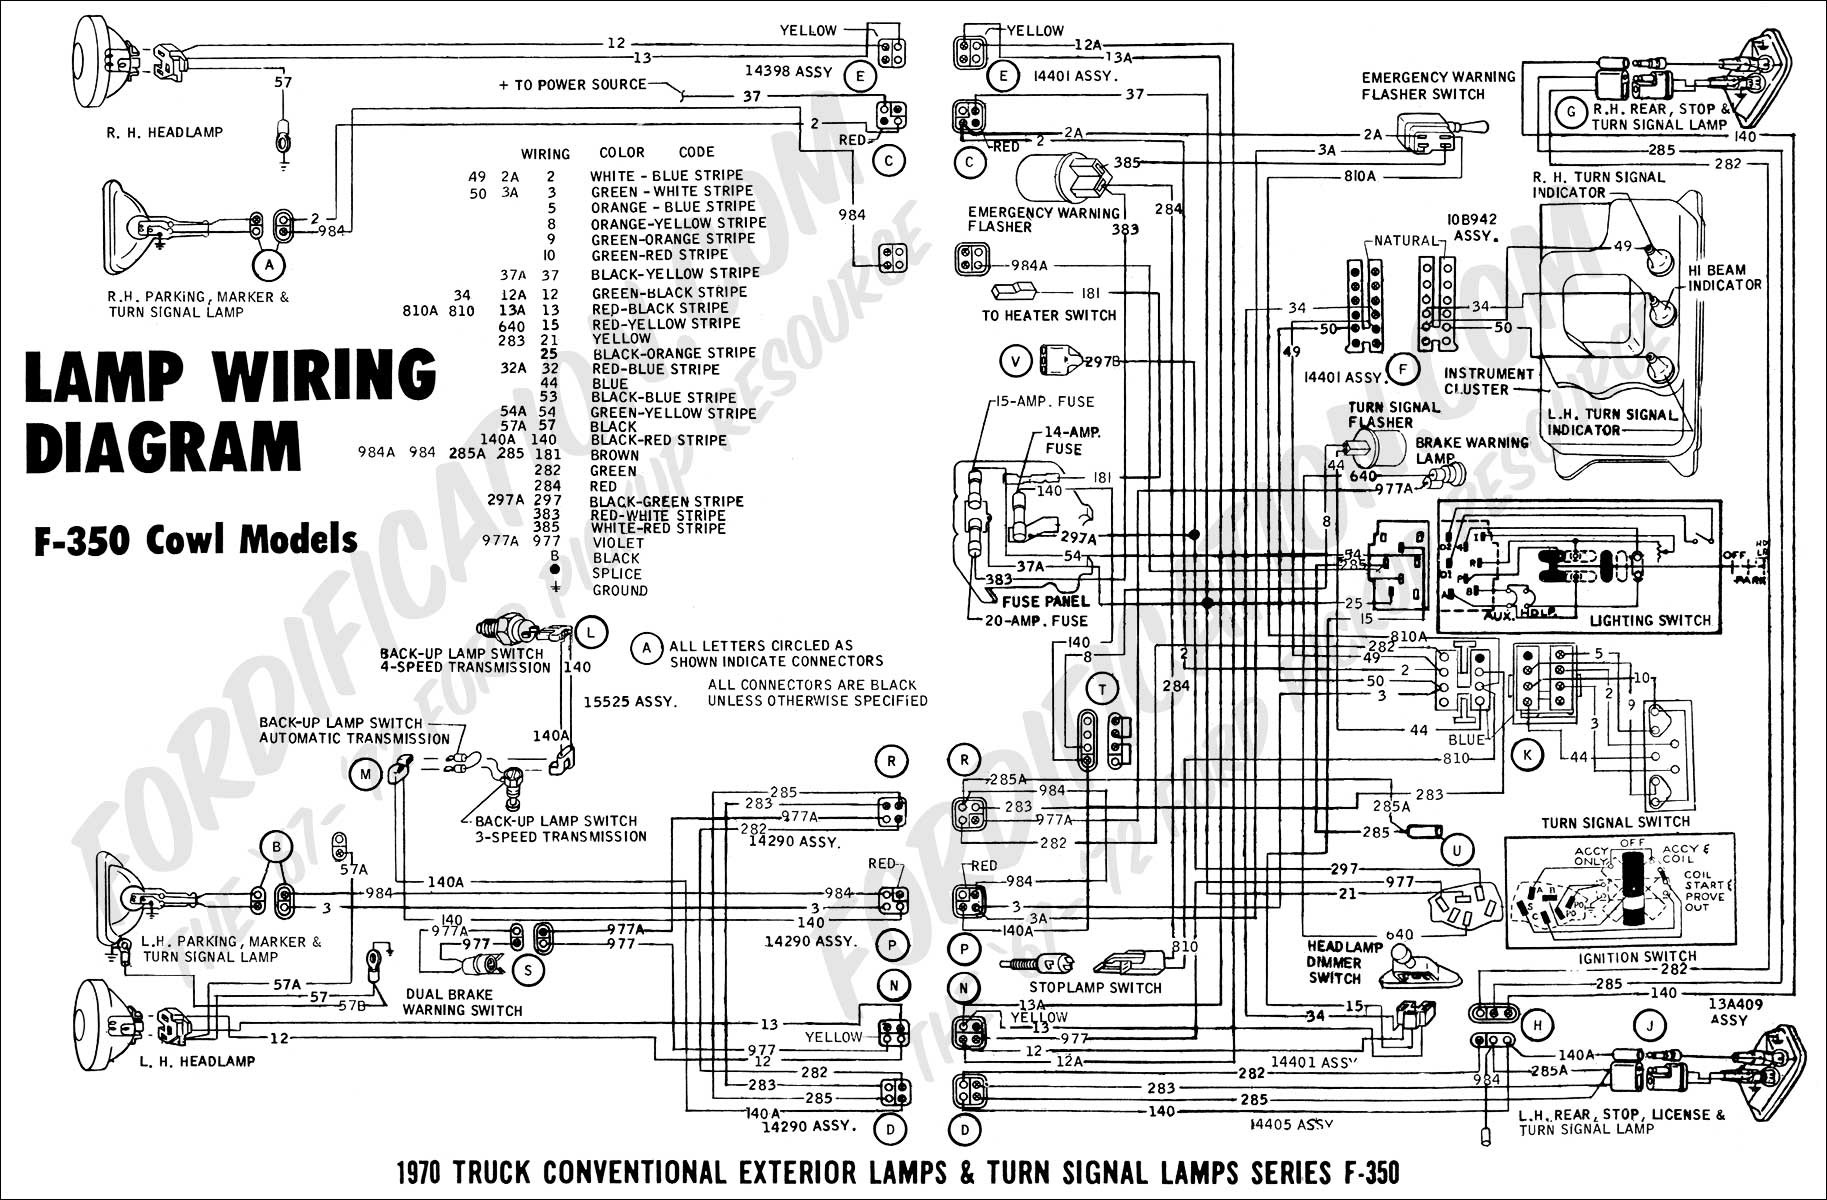 Ford Bronco Wiring Diagram on 1996 ford f-250 wiring diagram, 1989 ford wiring diagram, 1981 ford bronco wiring diagram, 1984 ford f-150 wiring diagram, 85 ford bronco wiring diagram, 1995 ford bronco wiring diagram, bronco engine diagram, 72 ford steering column wiring diagram, ford wiper motor wiring diagram, ford steering column parts diagram, 1975 ford bronco wiring diagram, 82 f150 wiring diagram, 1985 ford bronco exhaust system, 1987 ford wiring diagram, 1985 ford f-350 fuse diagram, ford bronco aftermarket wiring diagram, 1985 ford bronco ignition system, 1985 ford fuel pump wiring, 1992 ford bronco wiring diagram, 76 ford bronco wiring diagram,